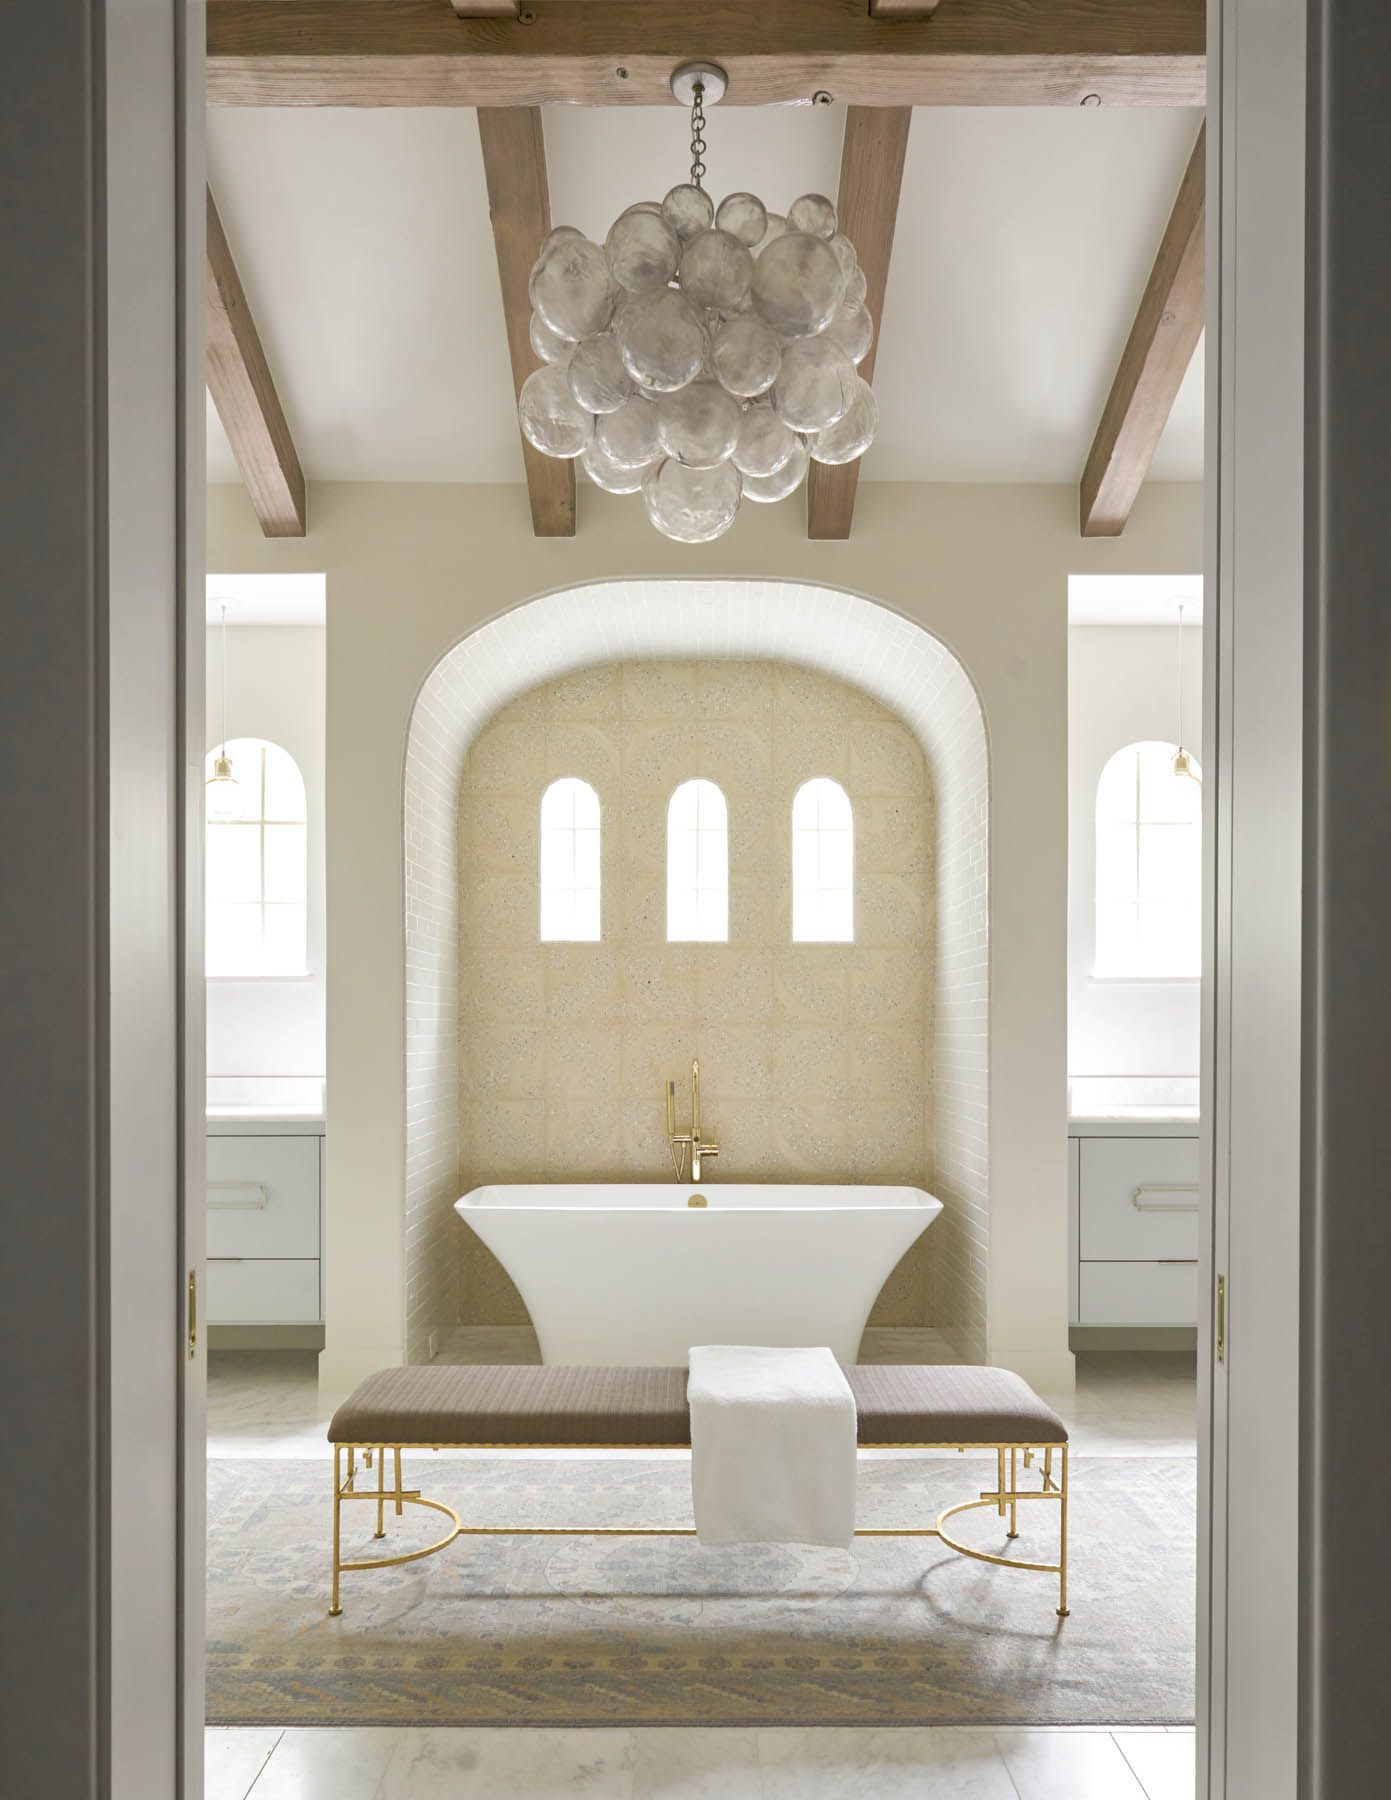 Grand bathroom design with stand alone tub, wooden beams and ...